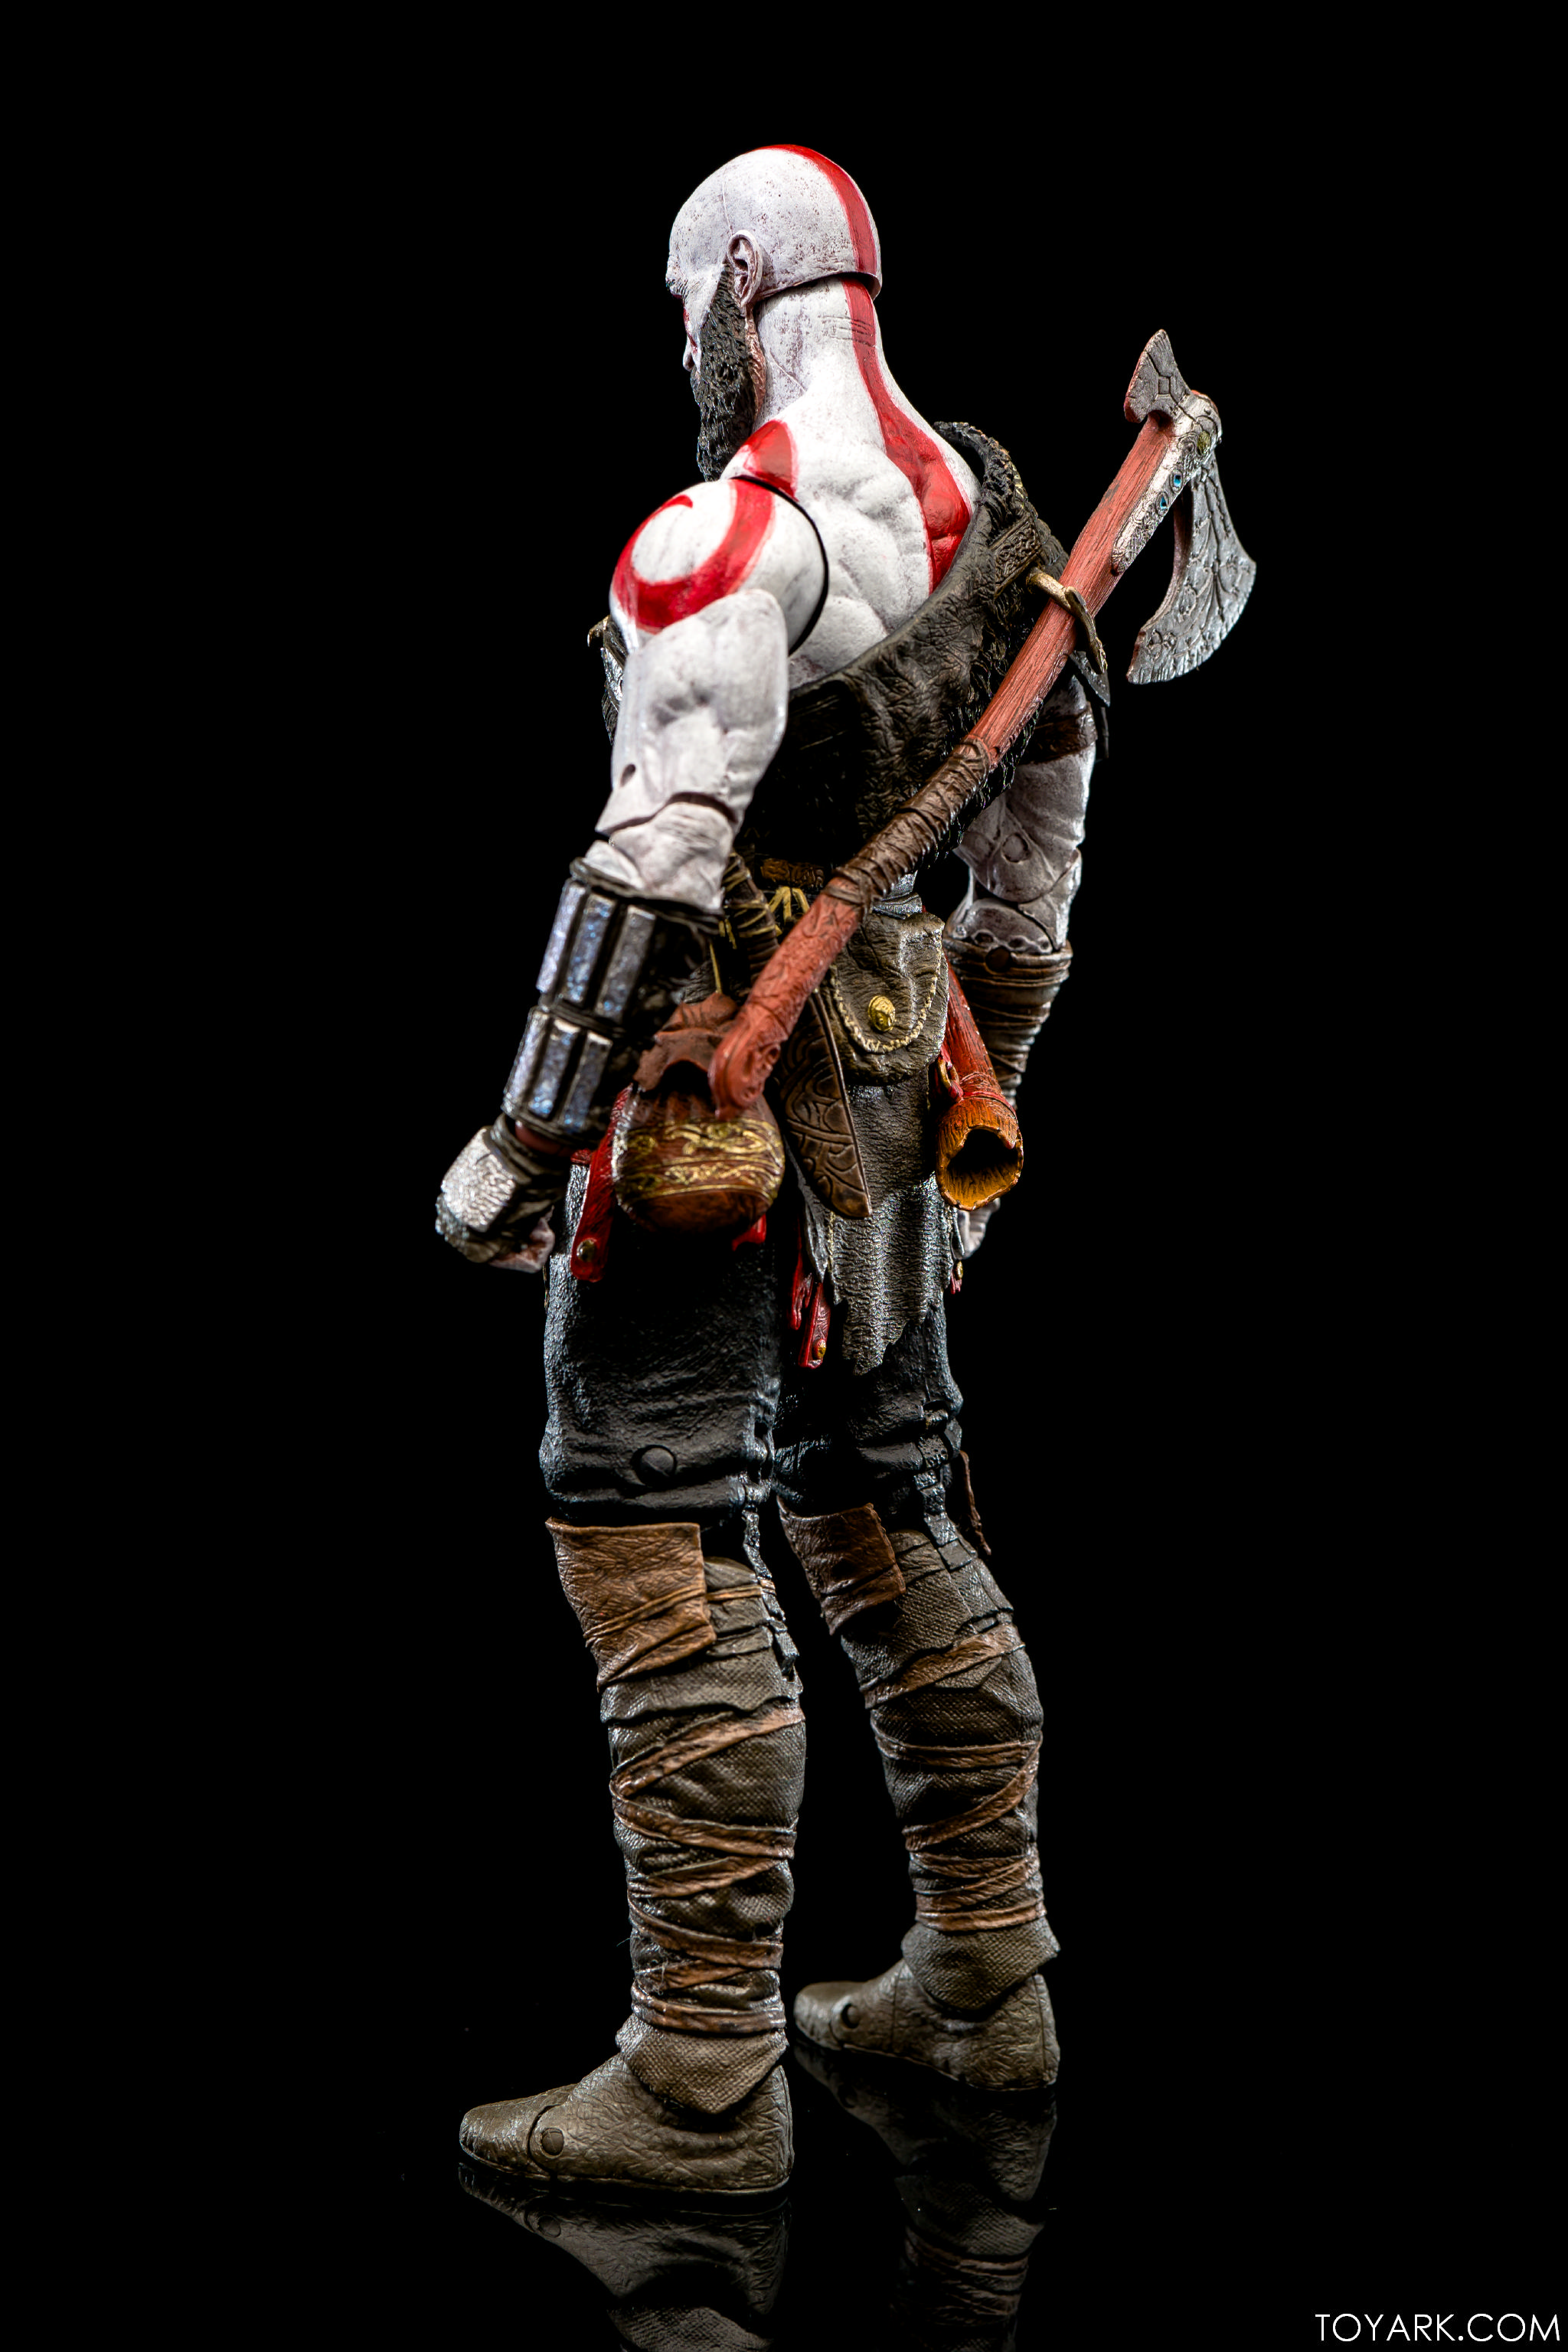 NECA Kratos God of War 4 (2018) In-Hand Gallery! - The ...